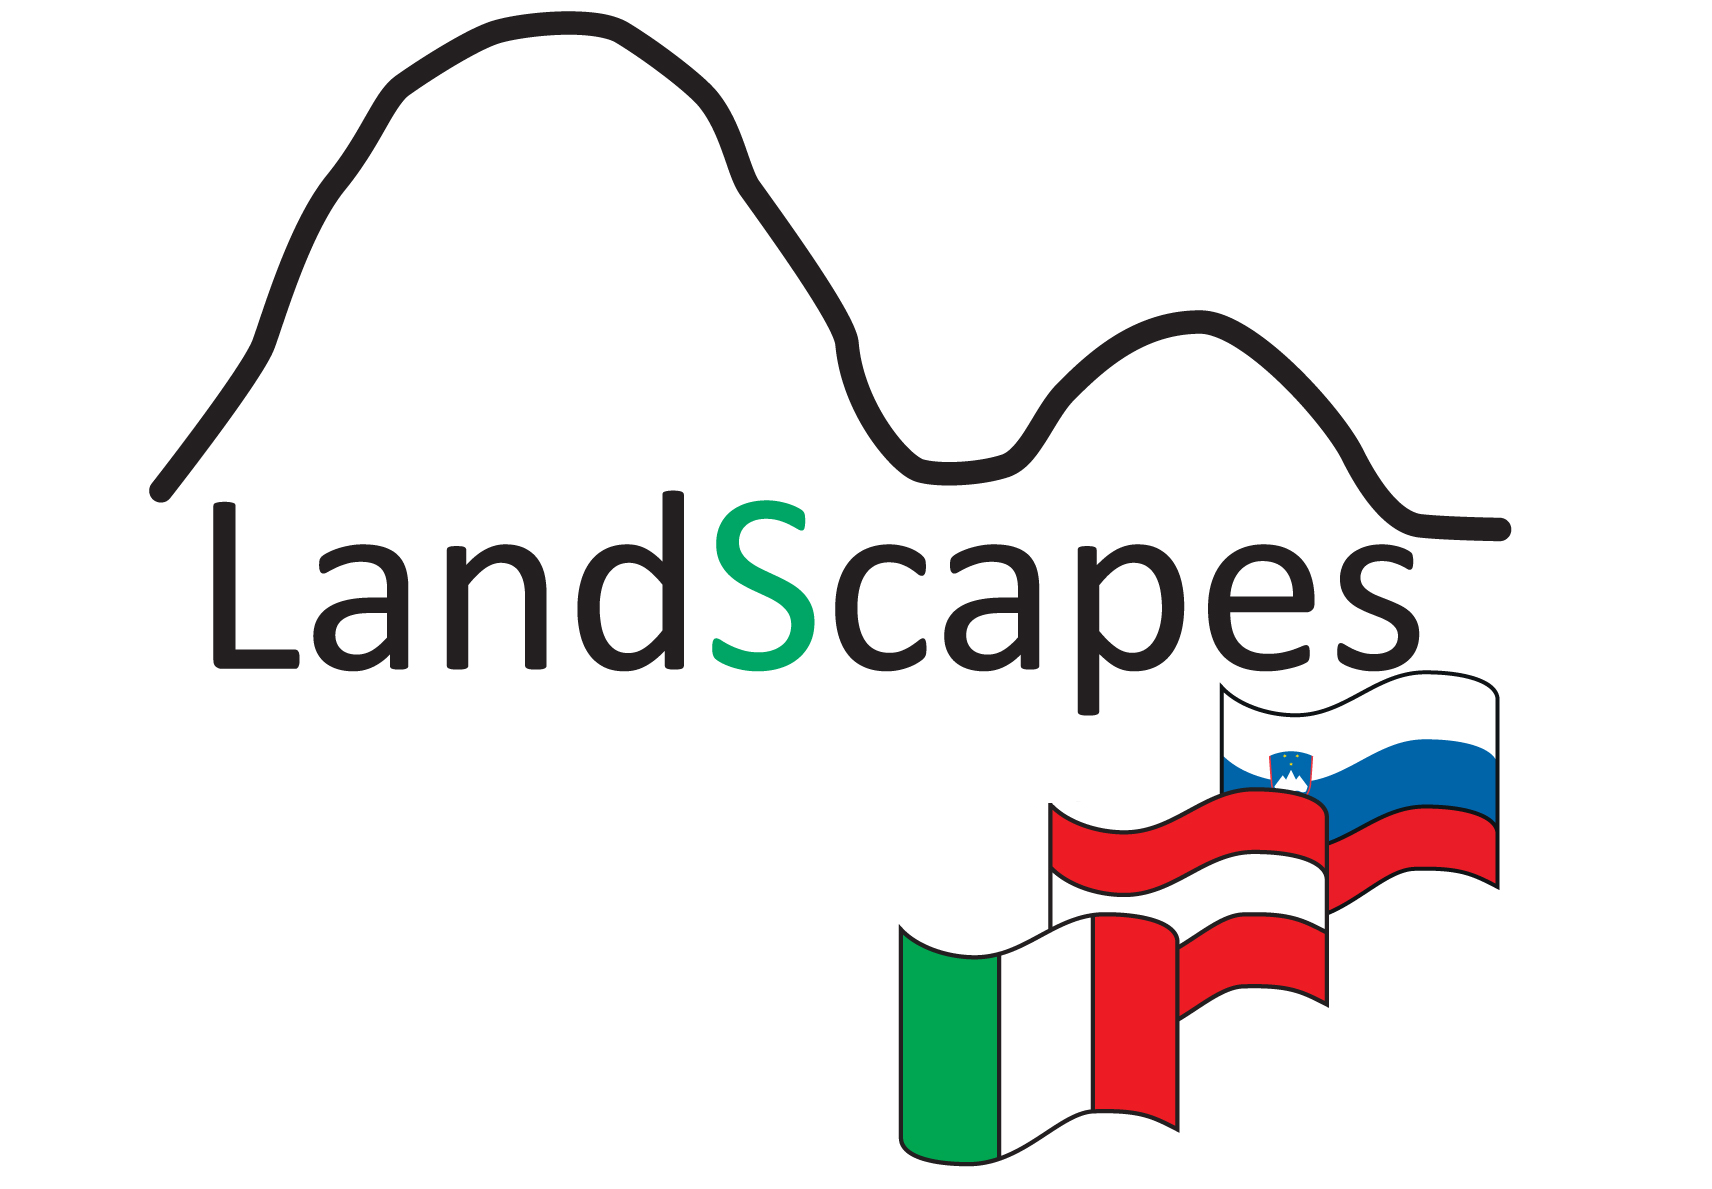 LOGO LandScapes copia